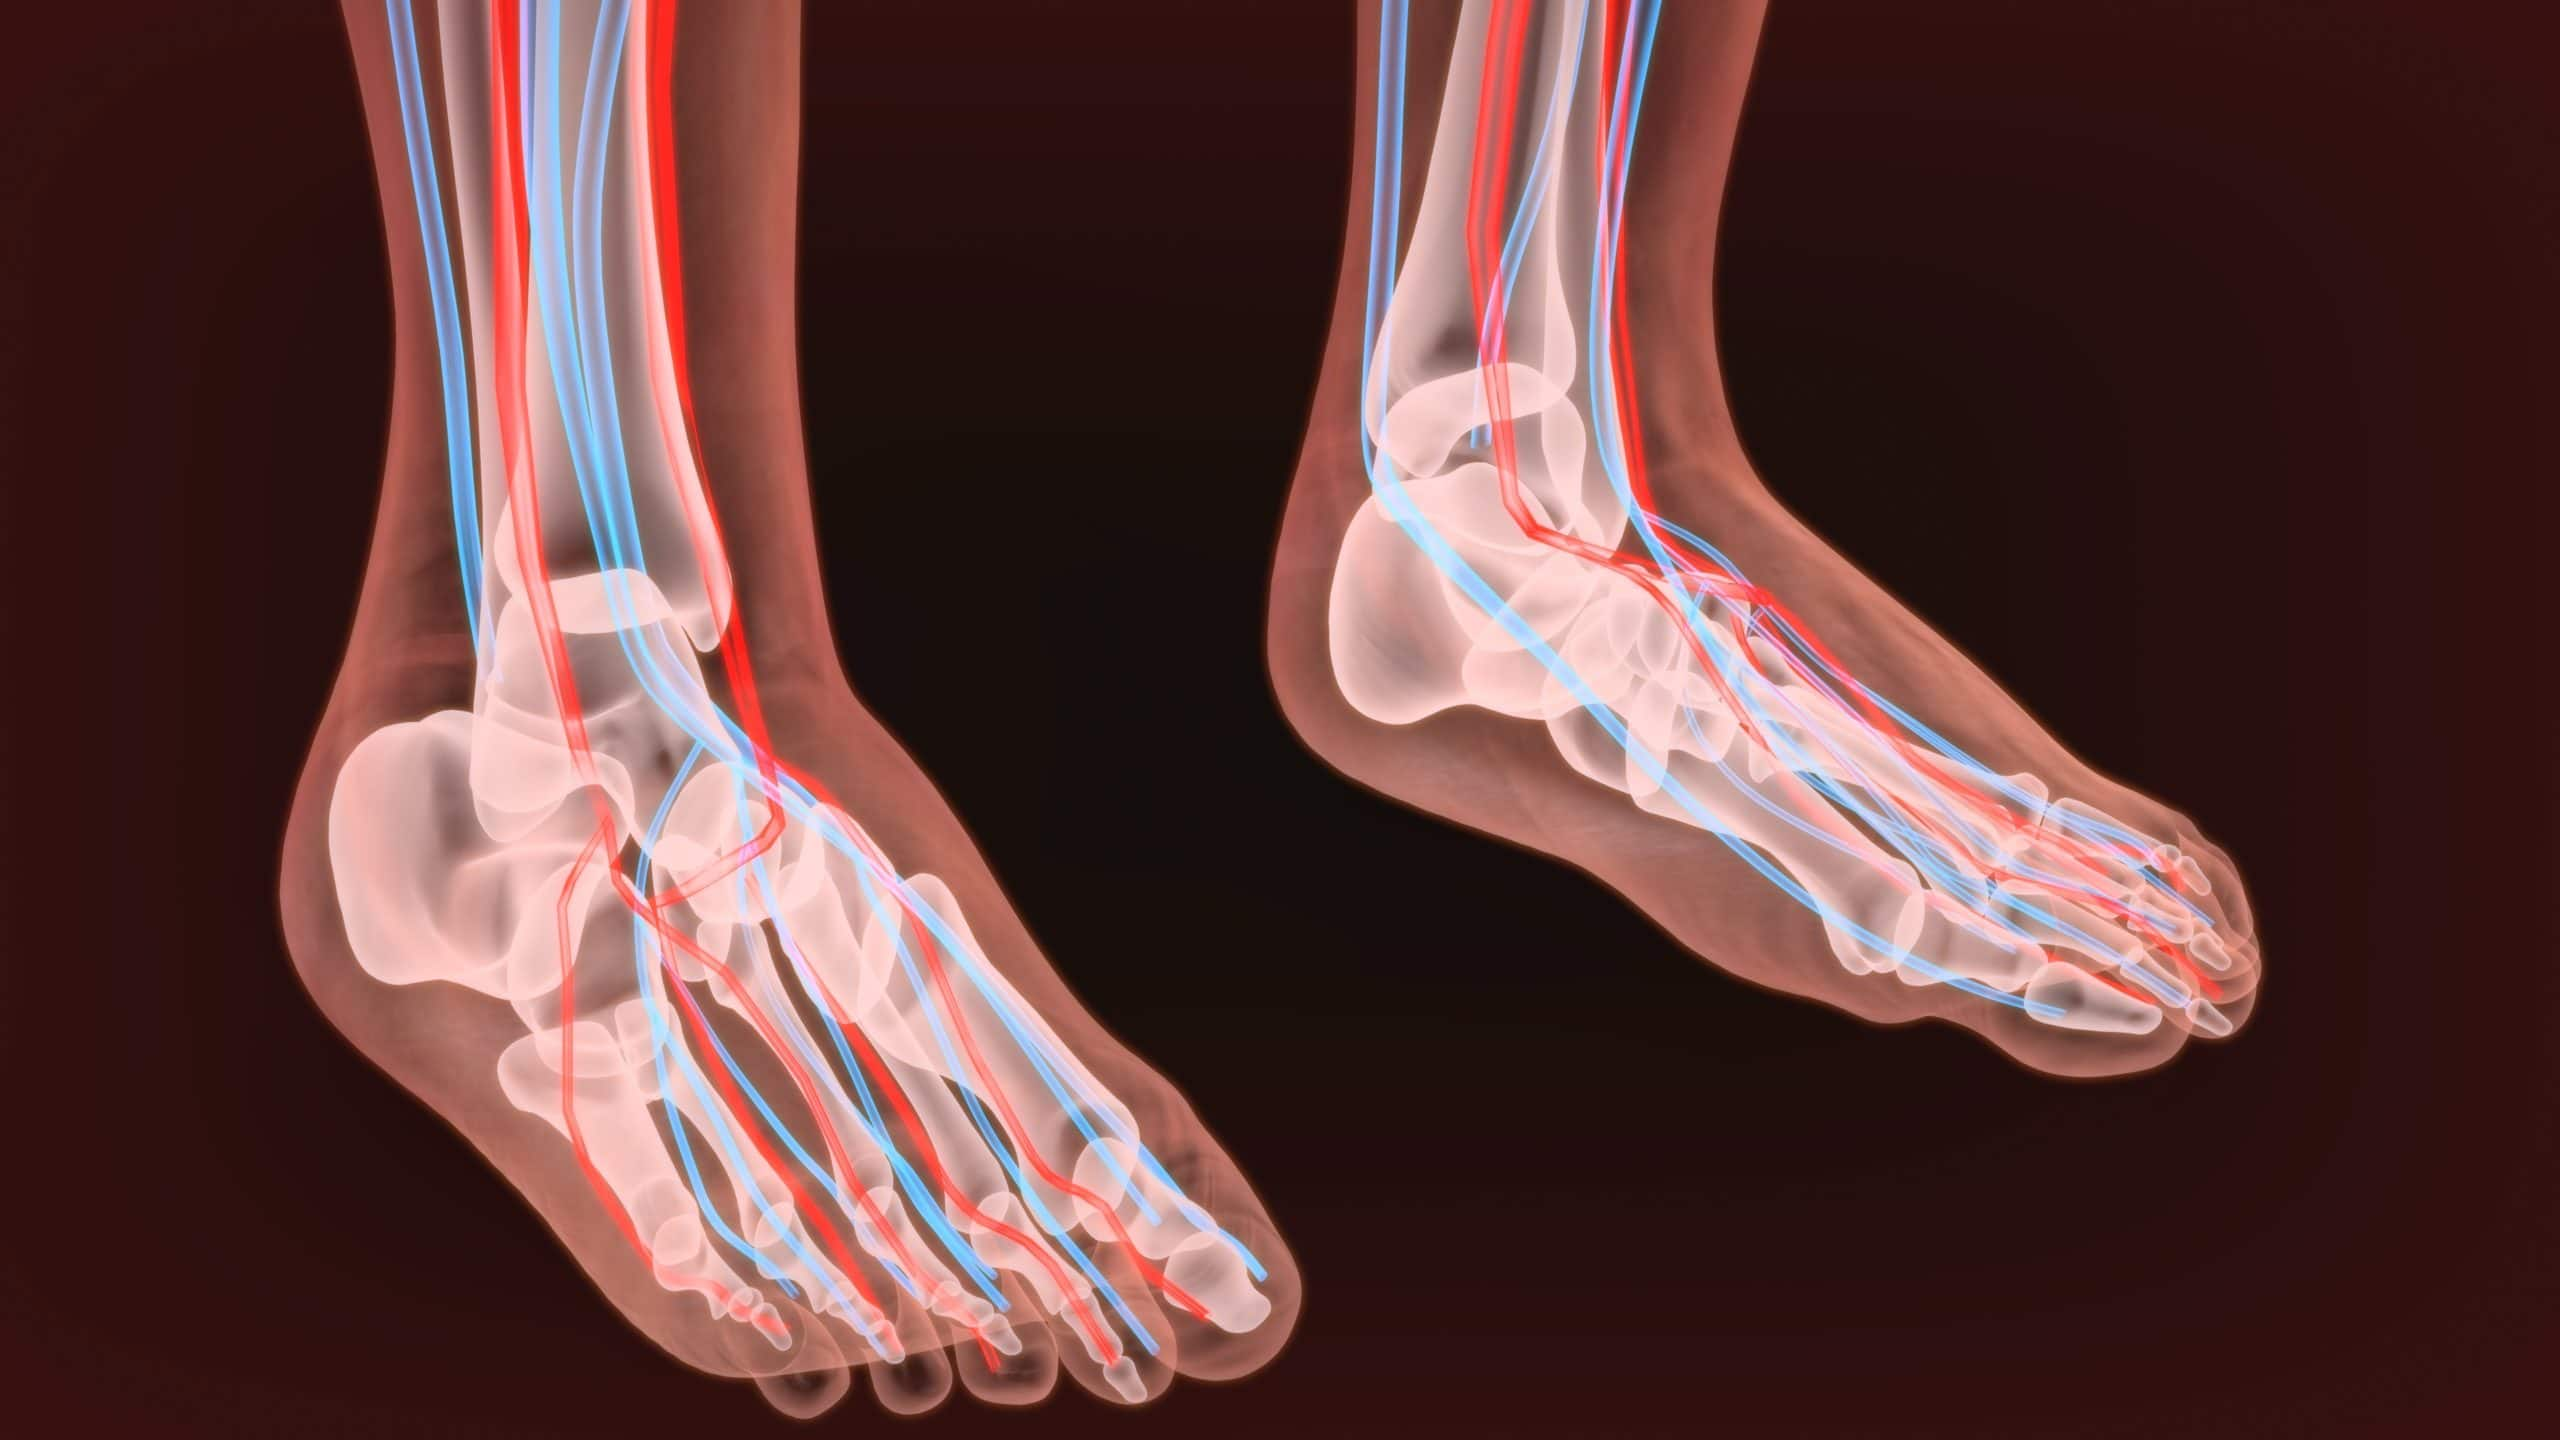 How Do I Stop Nerve Pain in My Feet?